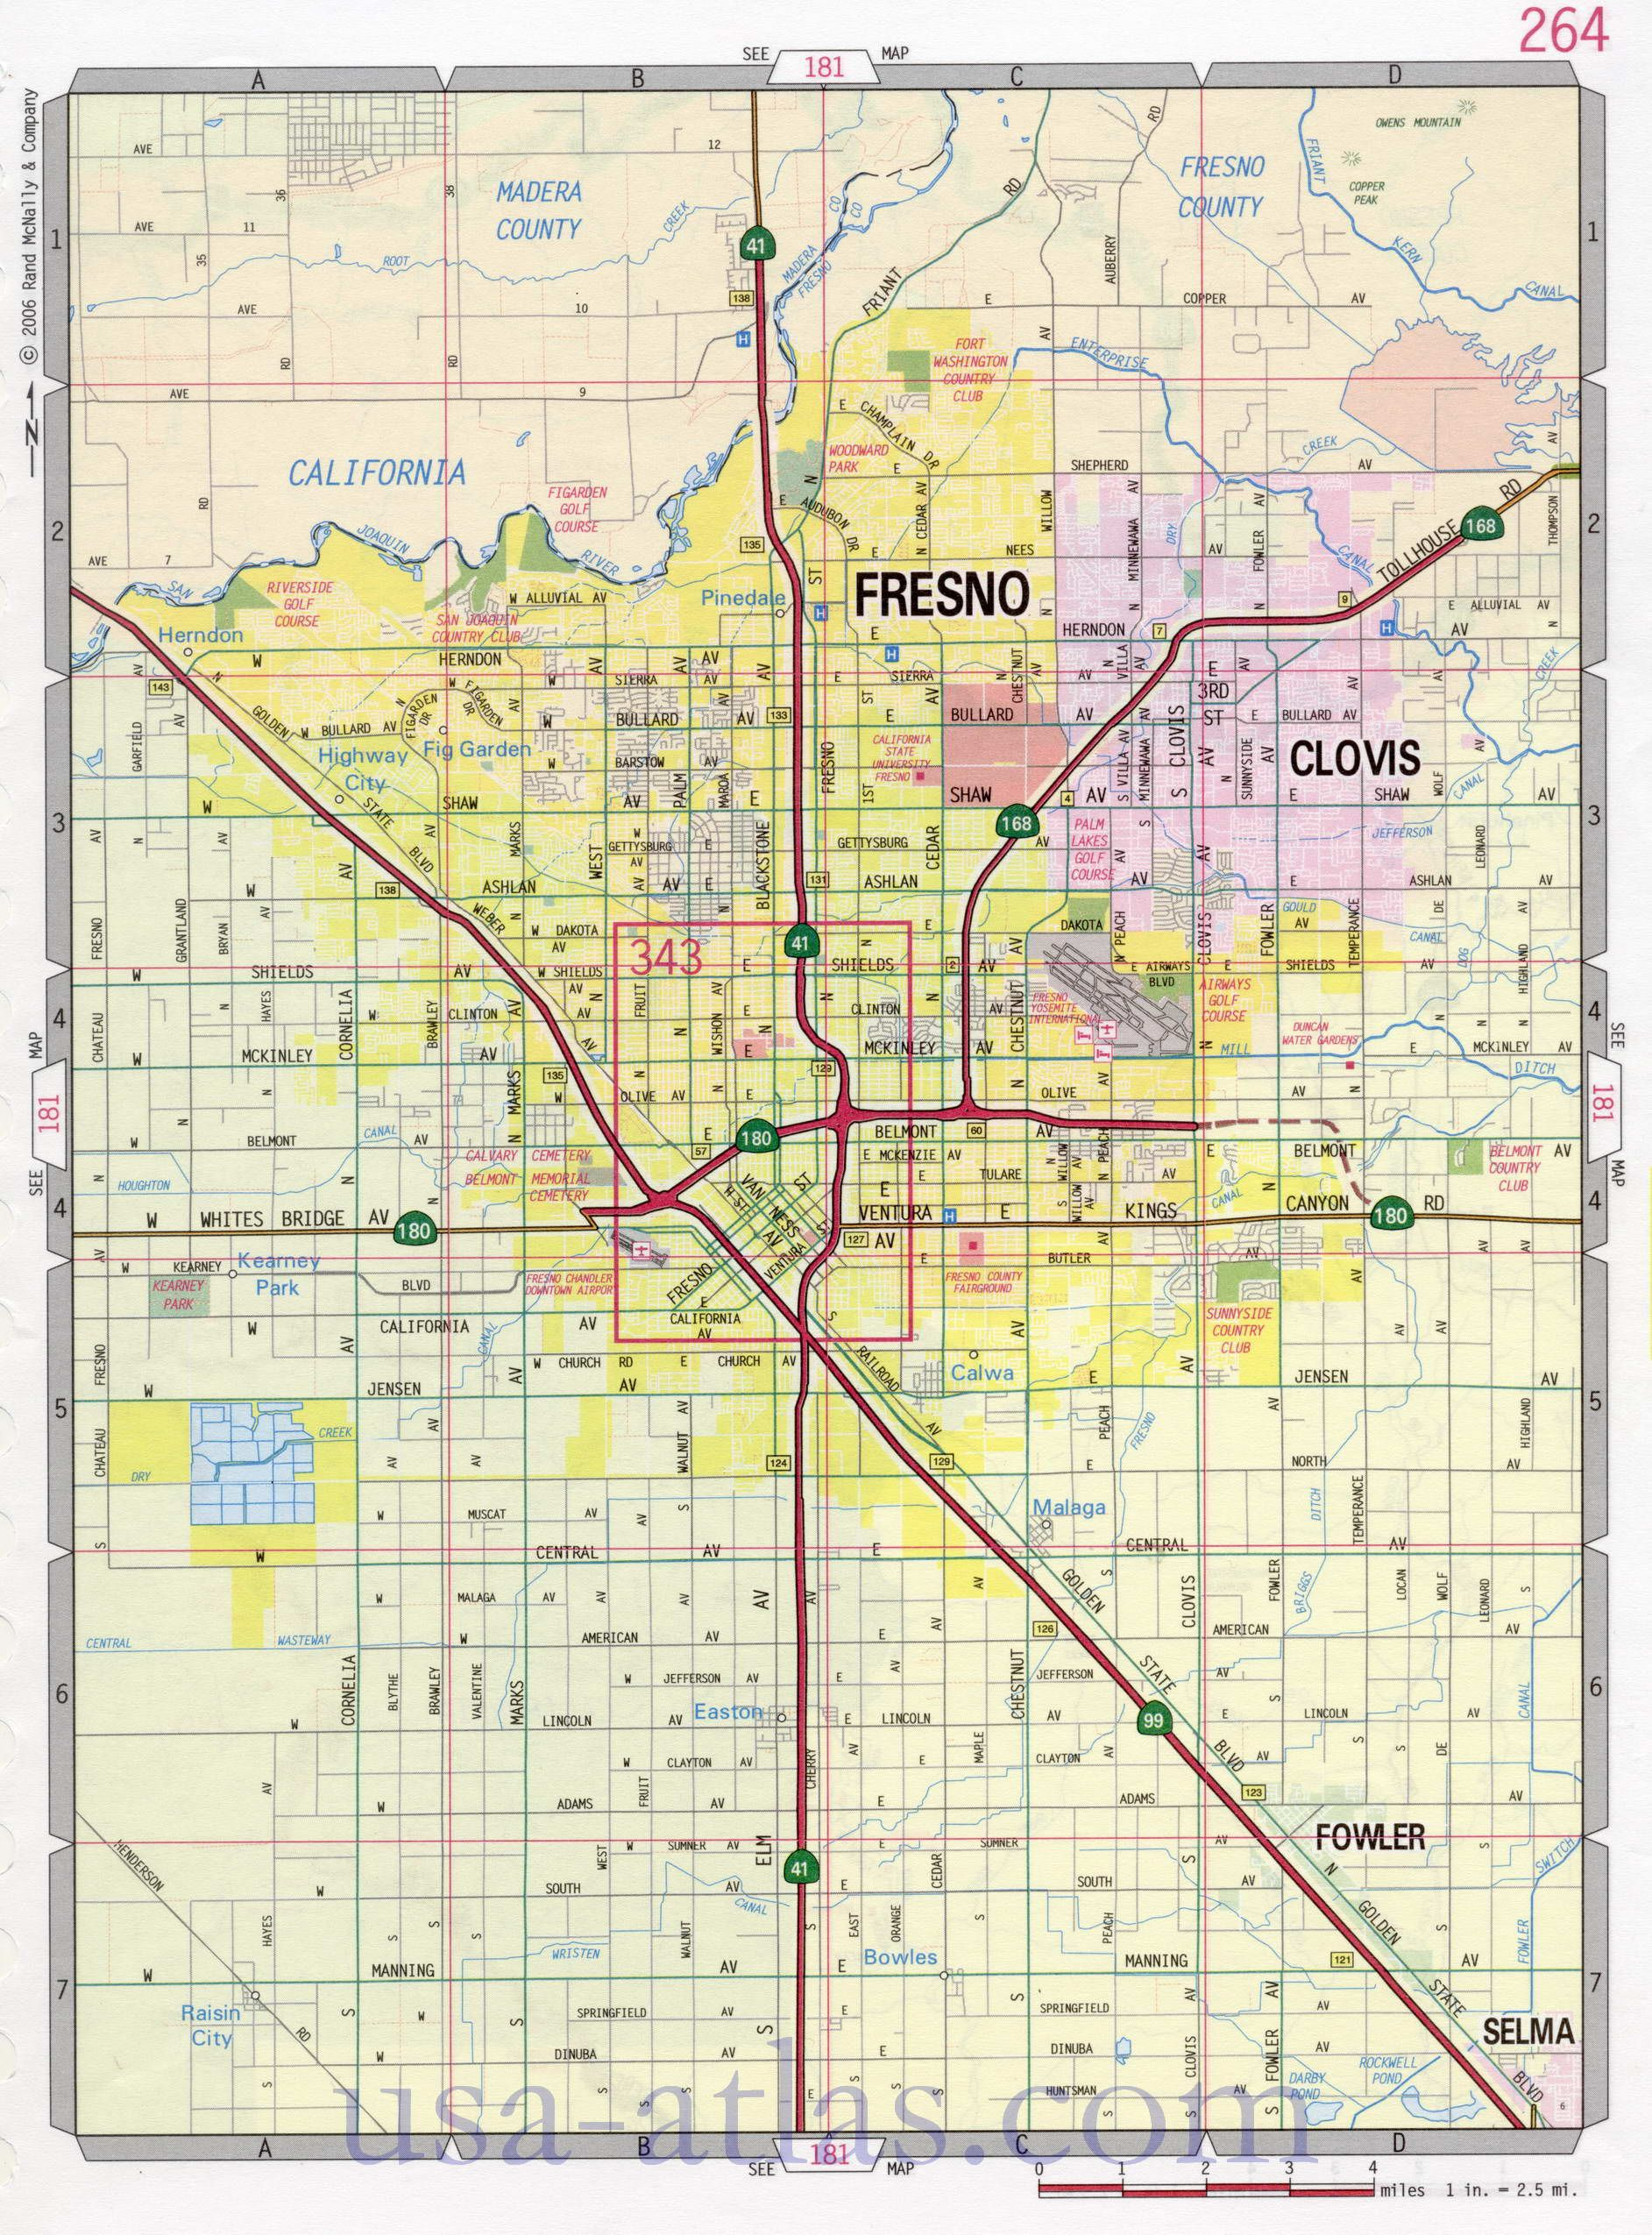 Fresno street map Largescale detailed streets map Fresno sity